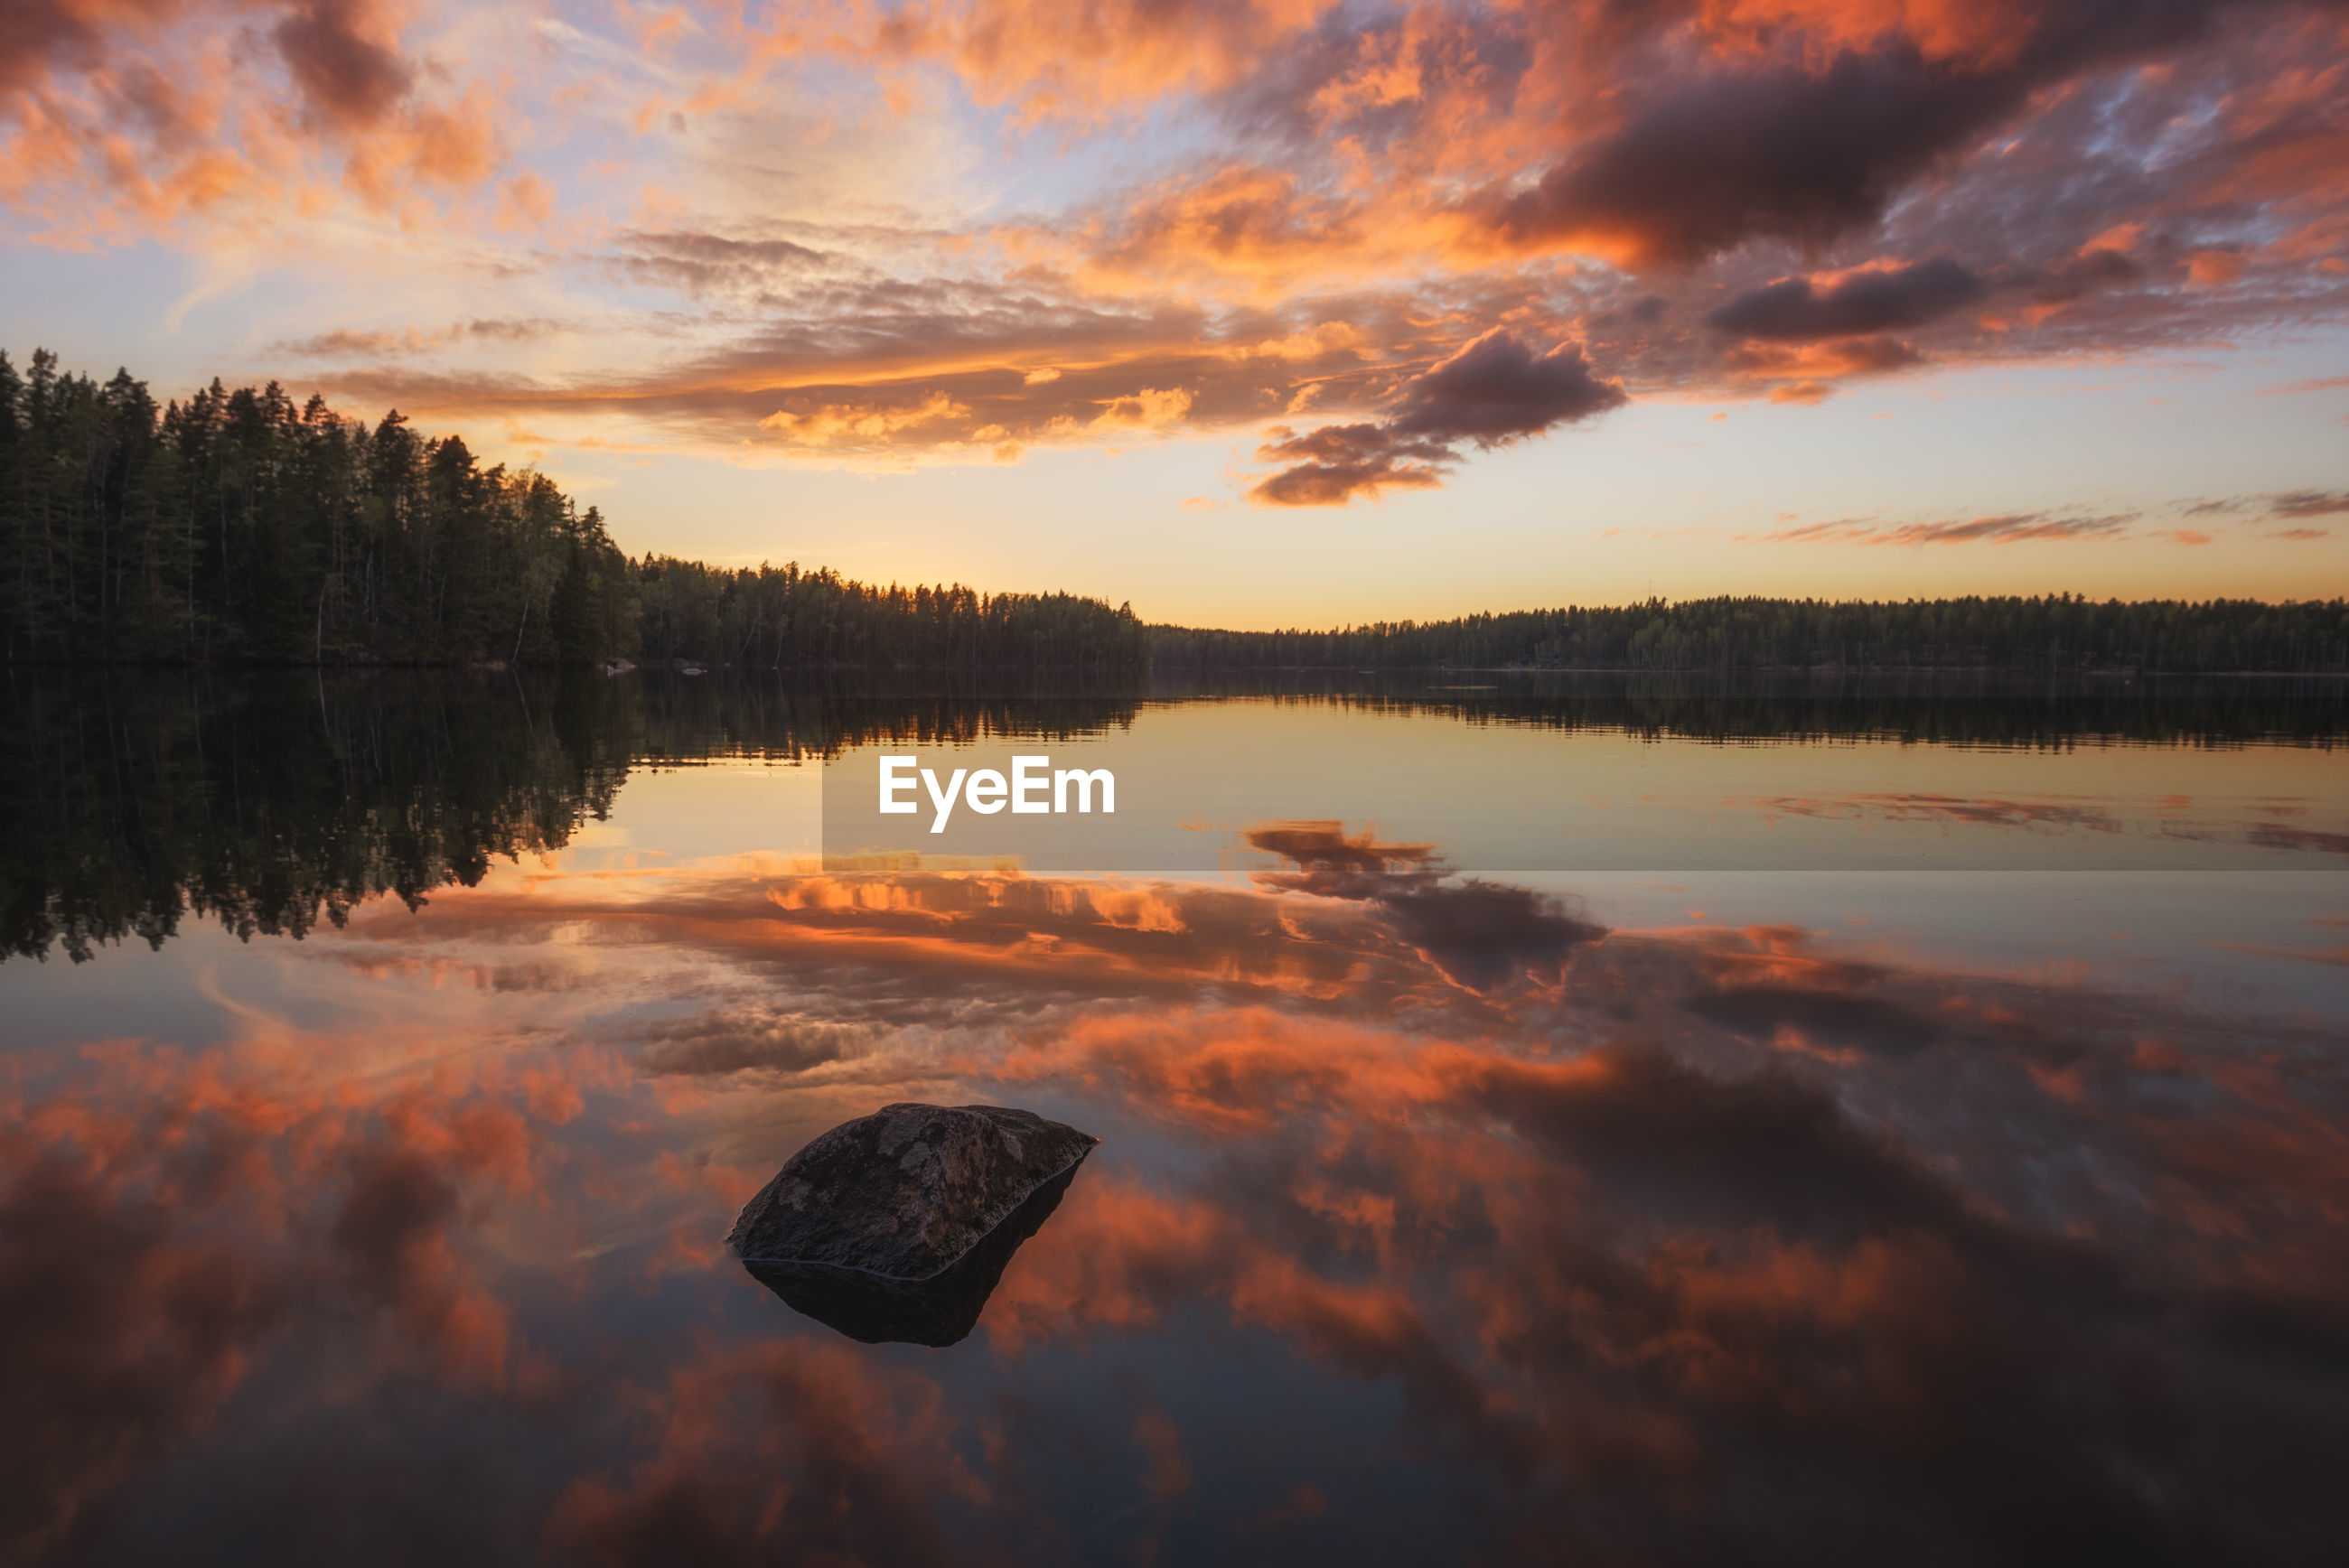 Scenic view of sunset sky over water